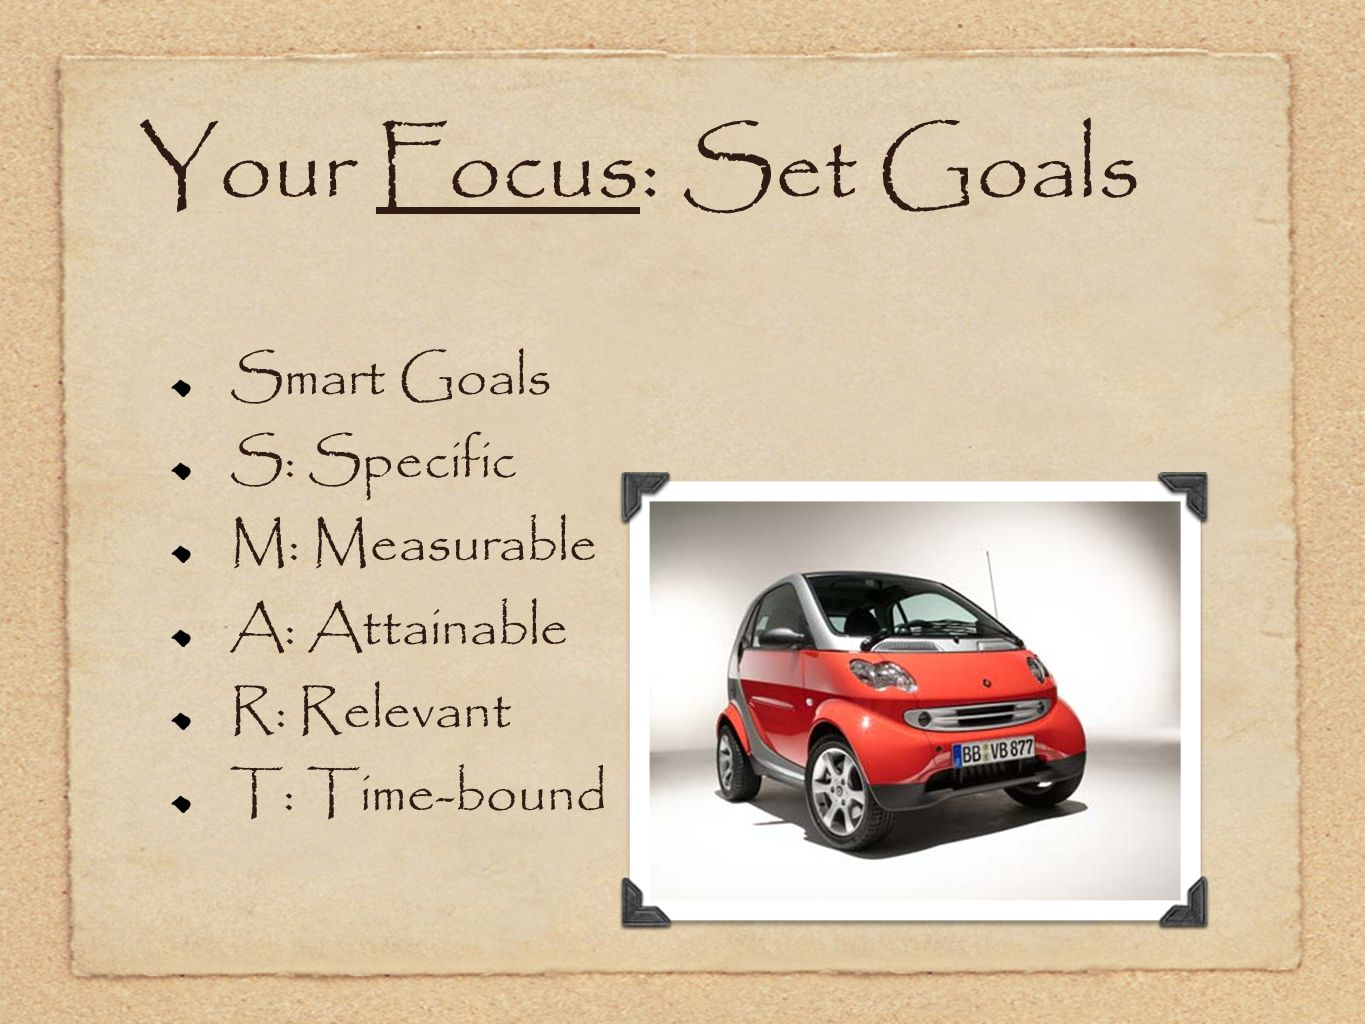 Your Focus: Set Goals Smart Goals S: Specific M: Measurable A: Attainable R: Relevant T: Time-bound